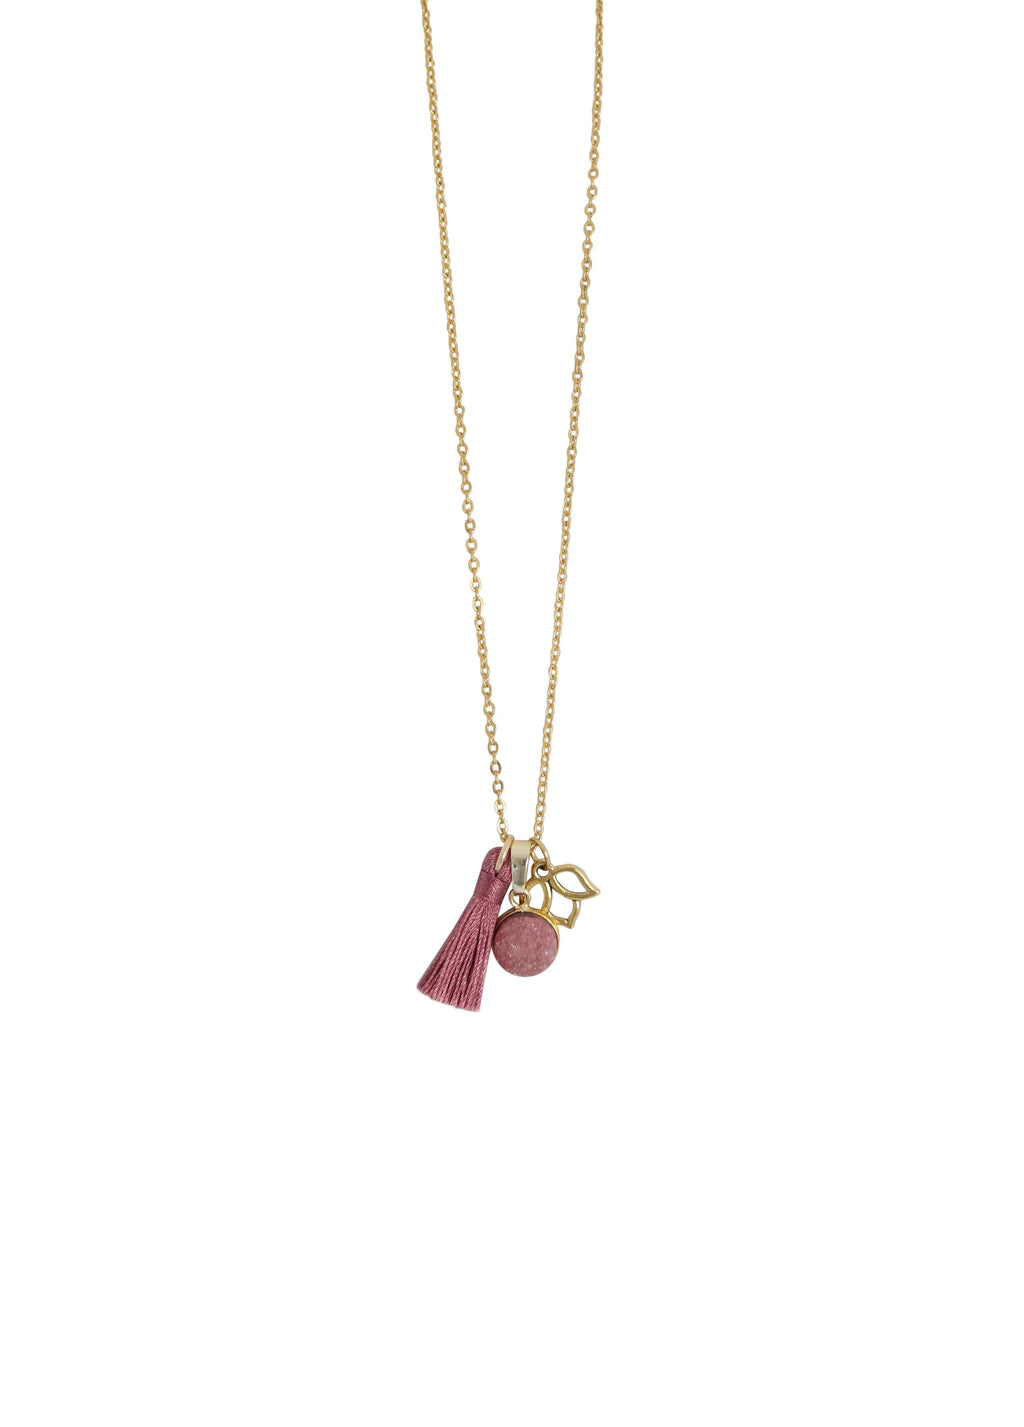 Blossom Necklace - Carolyn Hearn Designs